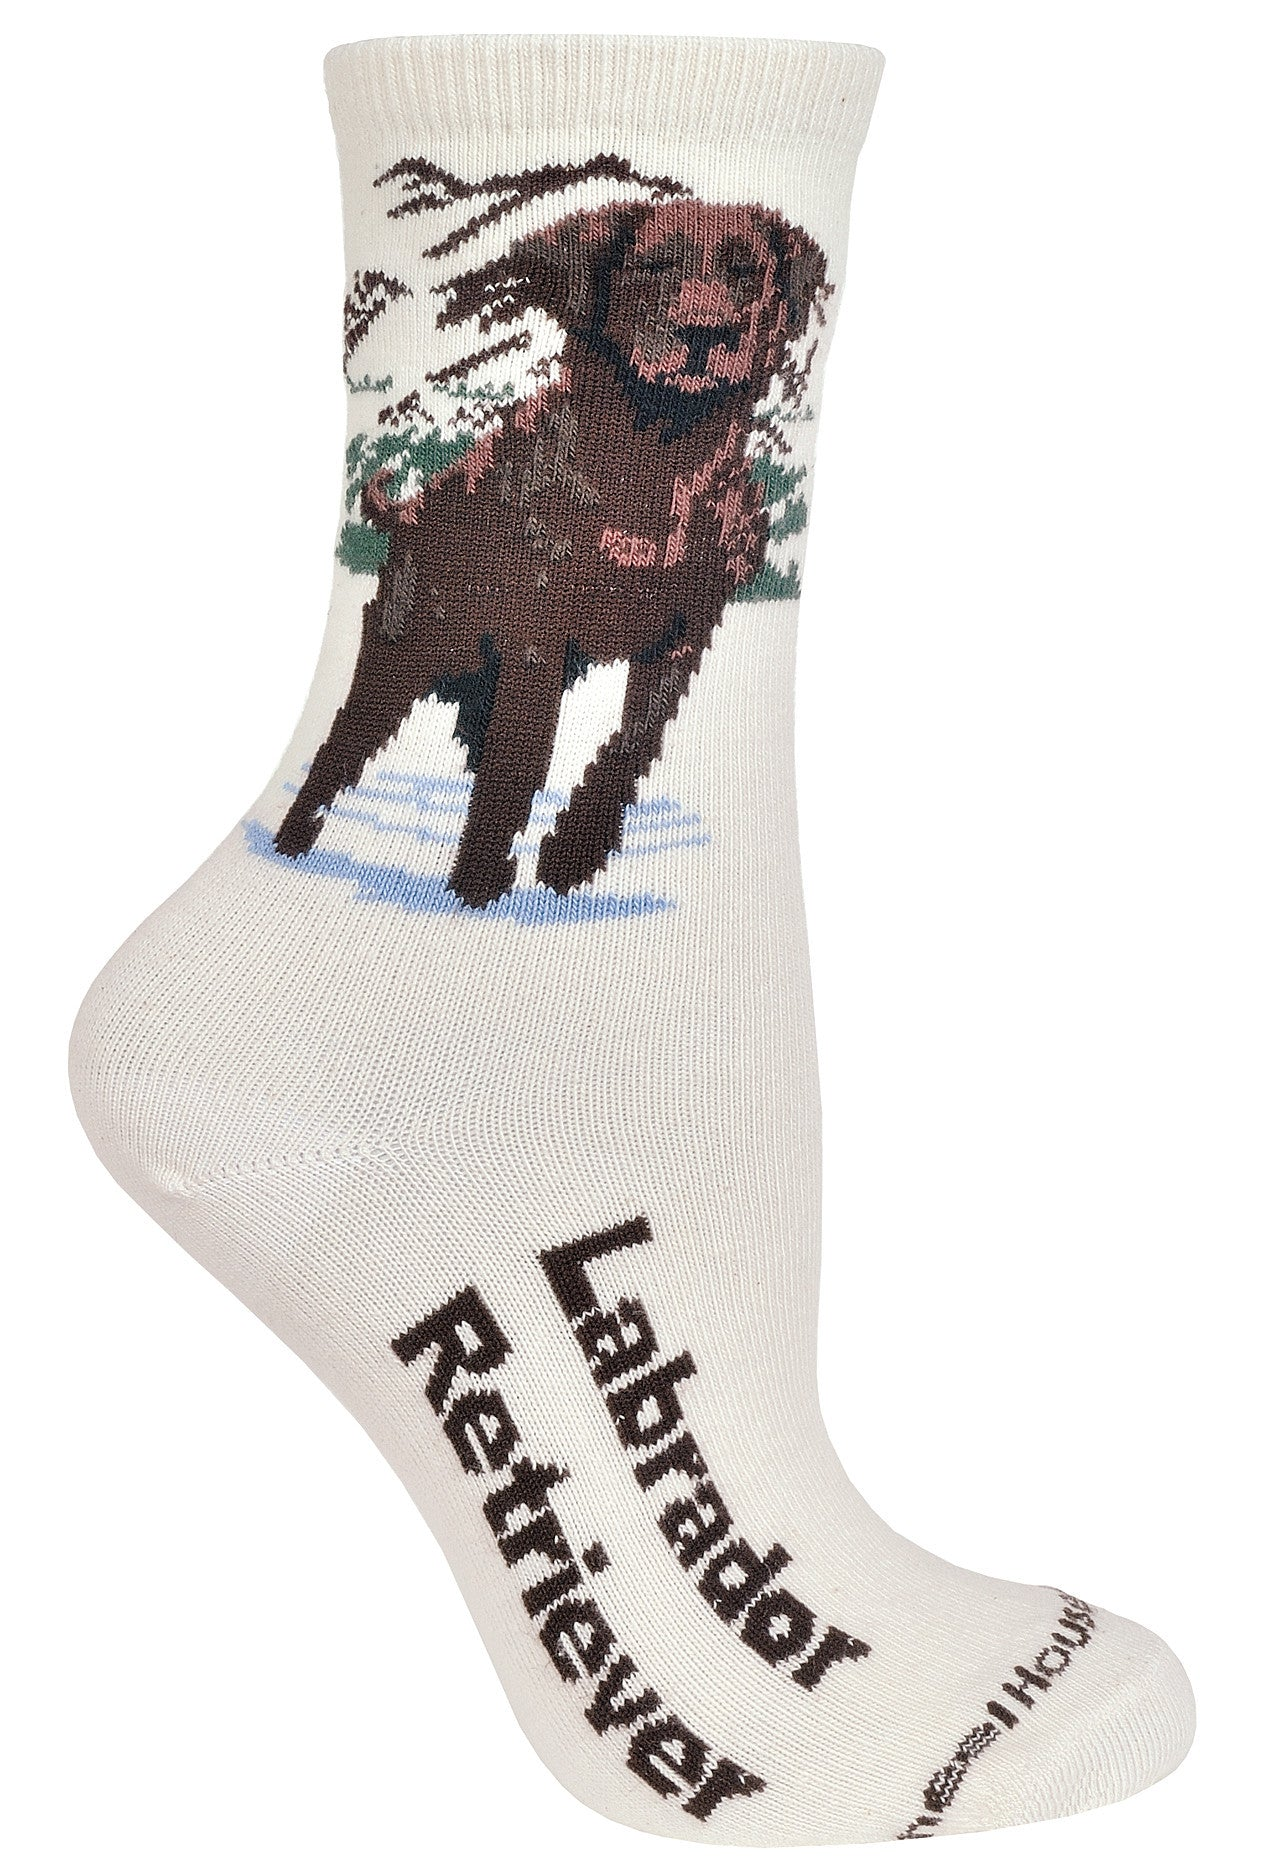 Labrador, Chocolate on Natural Socks